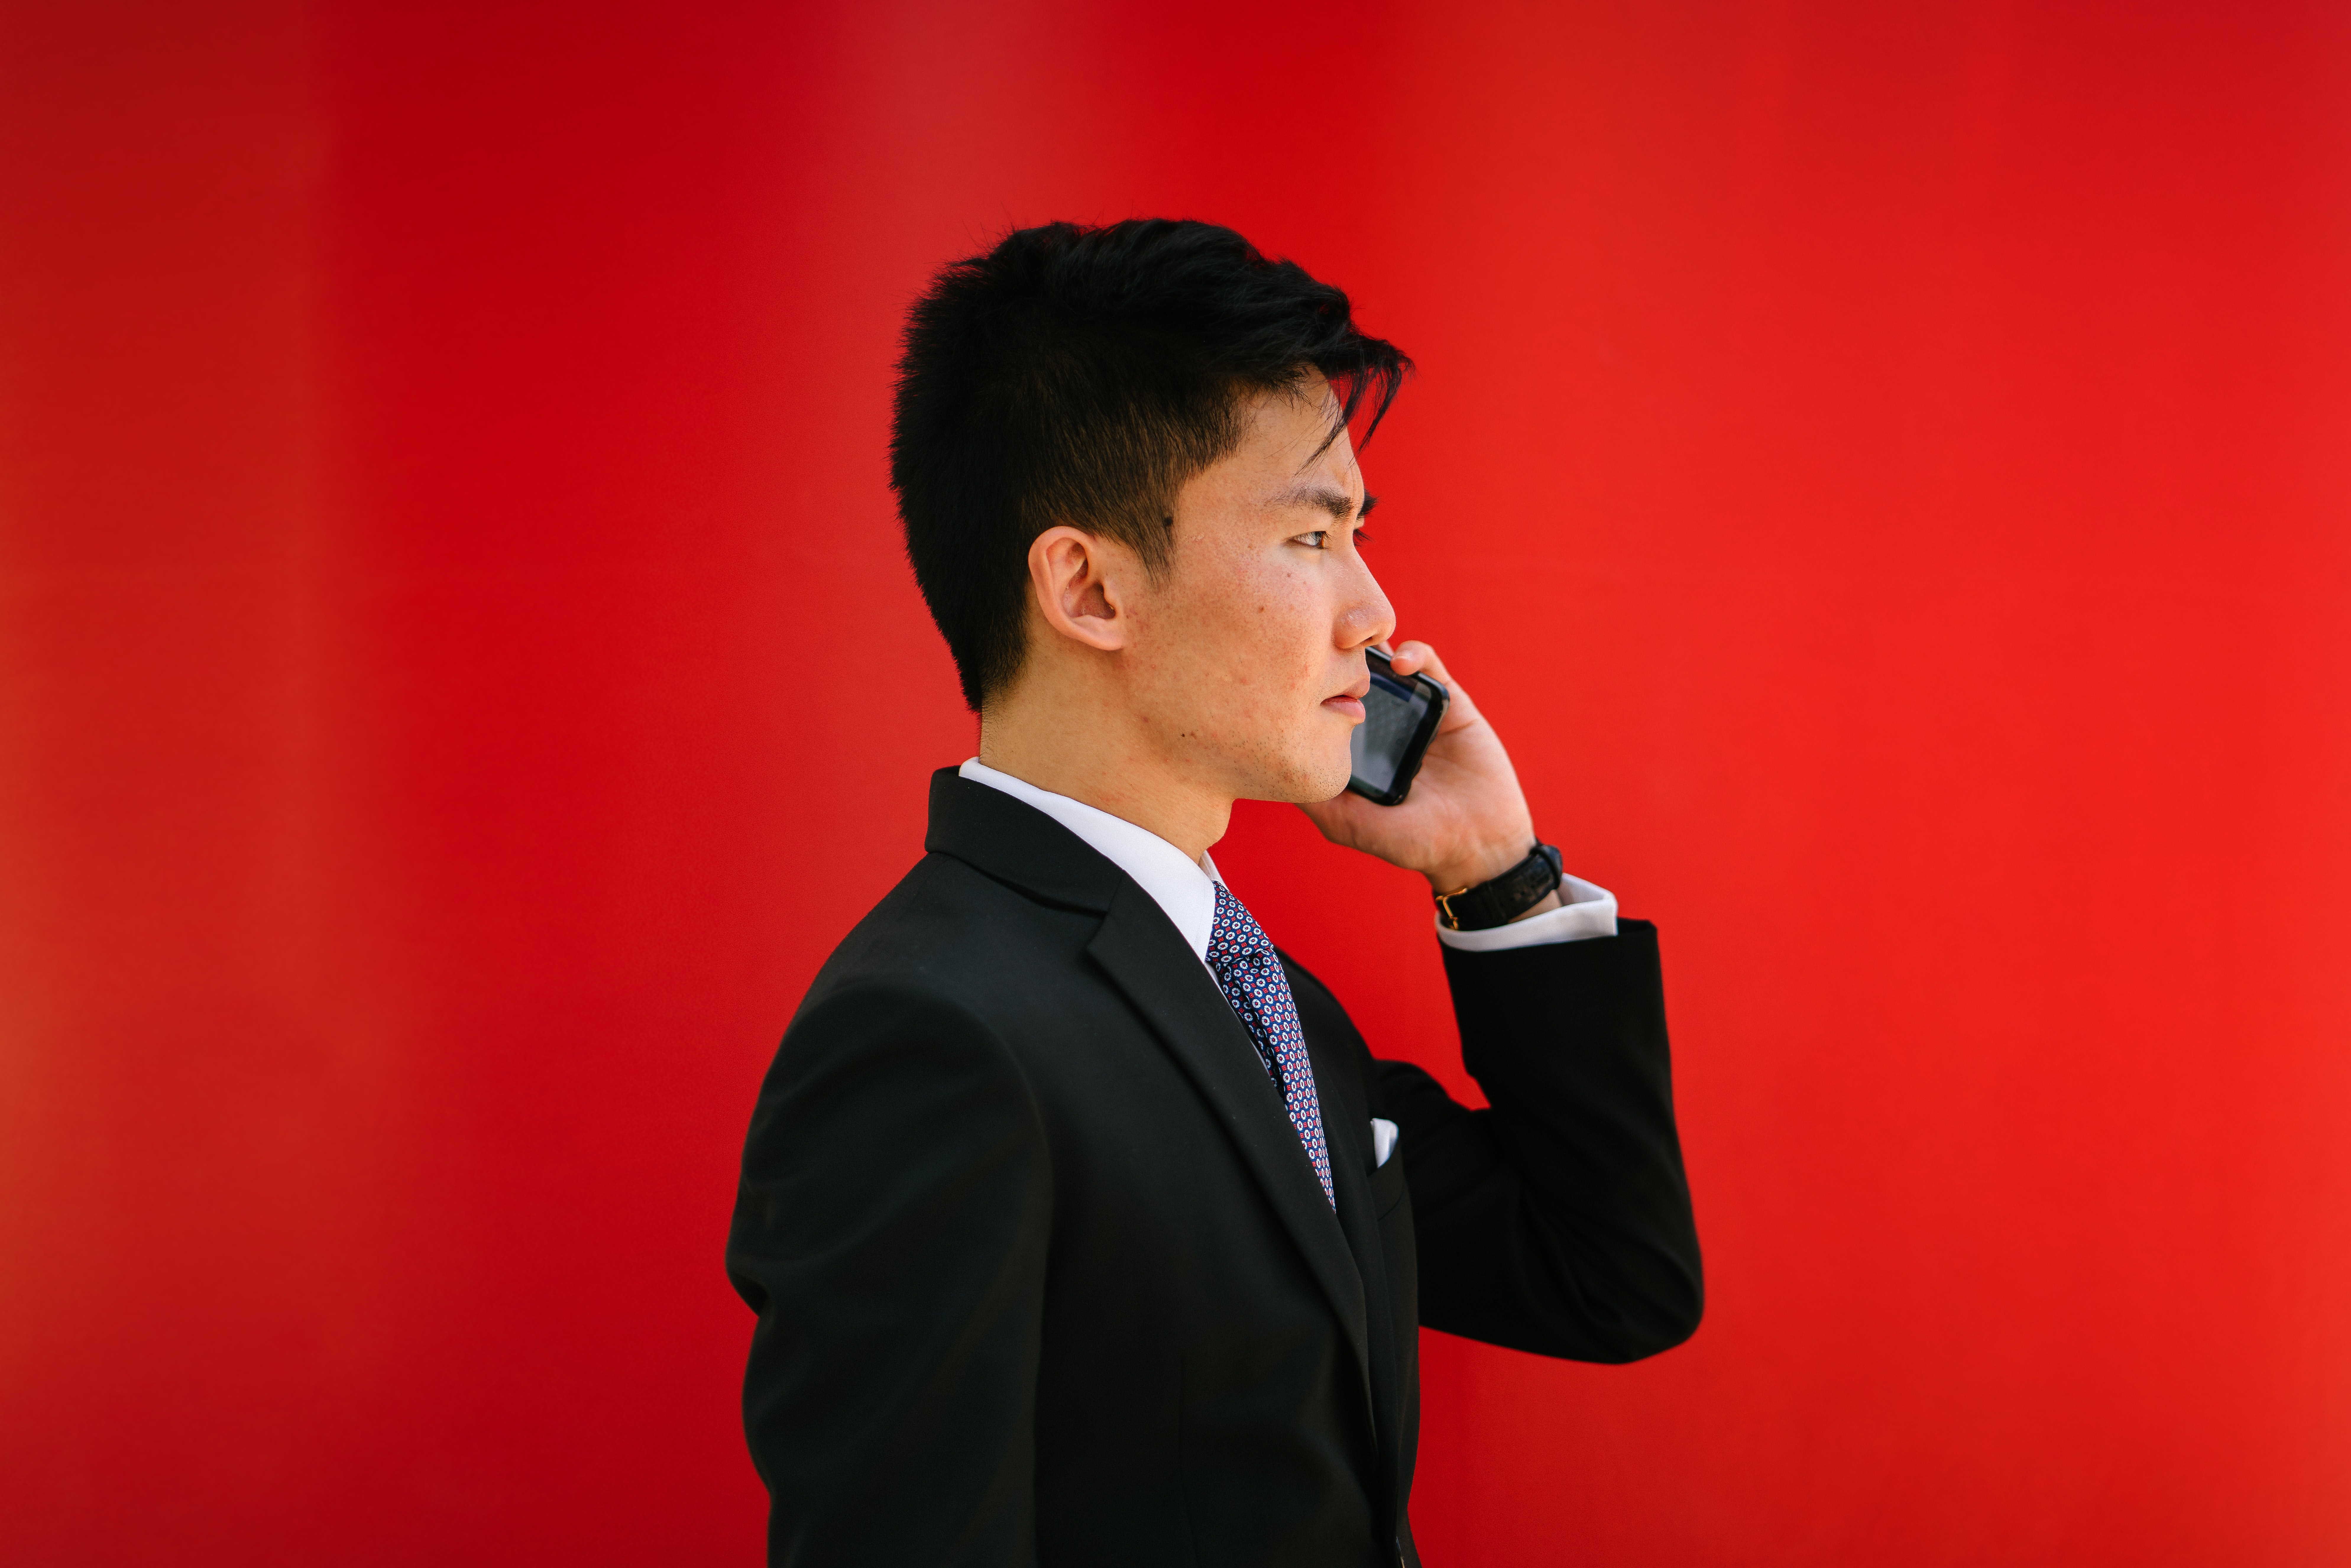 businessman-on-phone-red-background